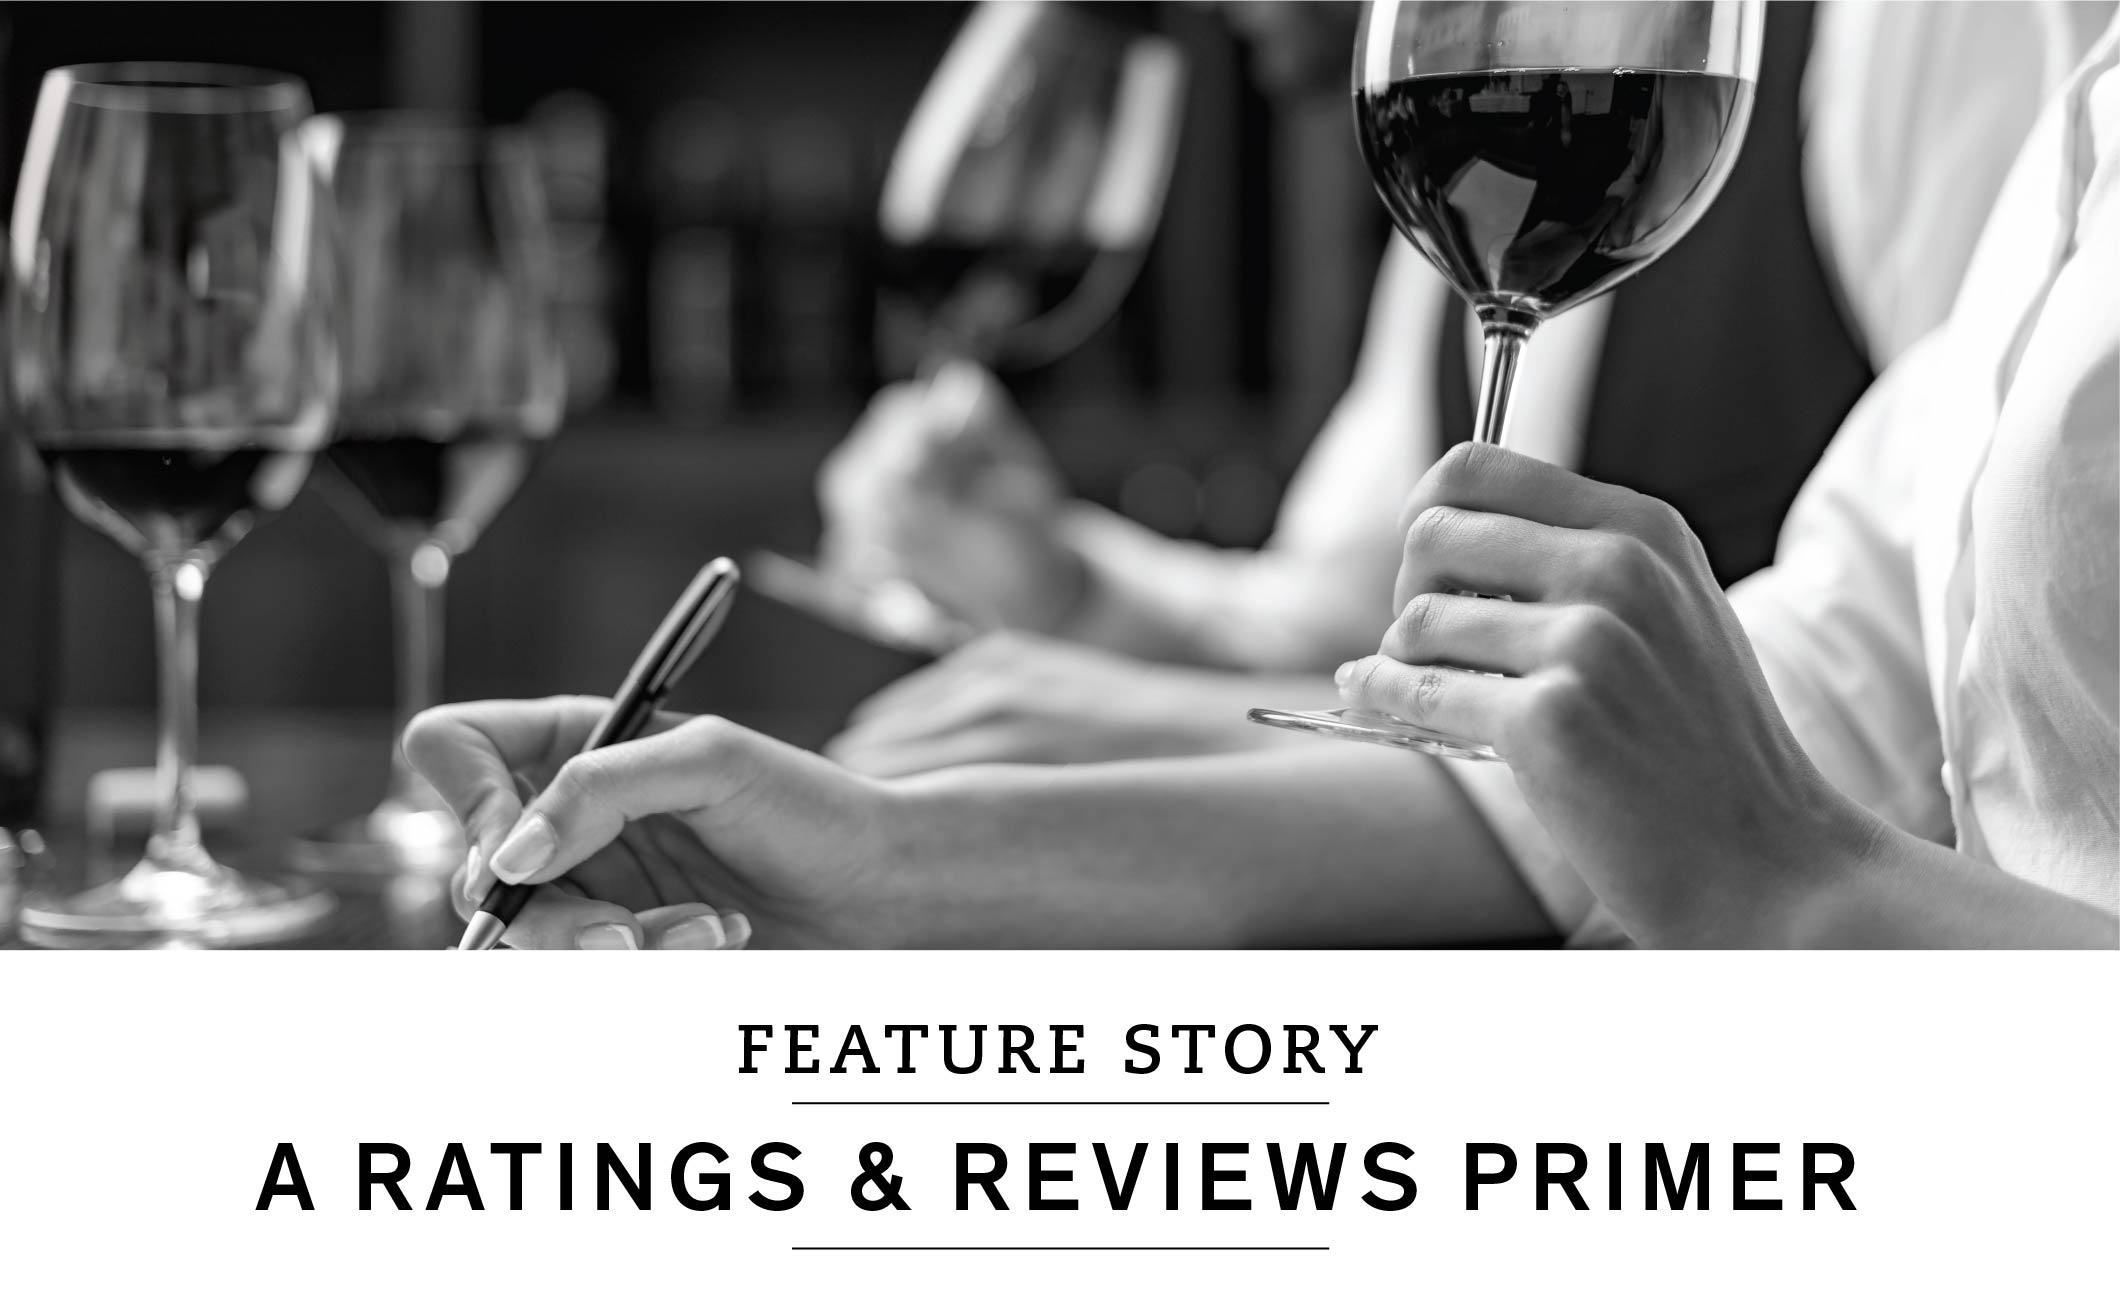 Feature story: A Ratings & Reviews Primer